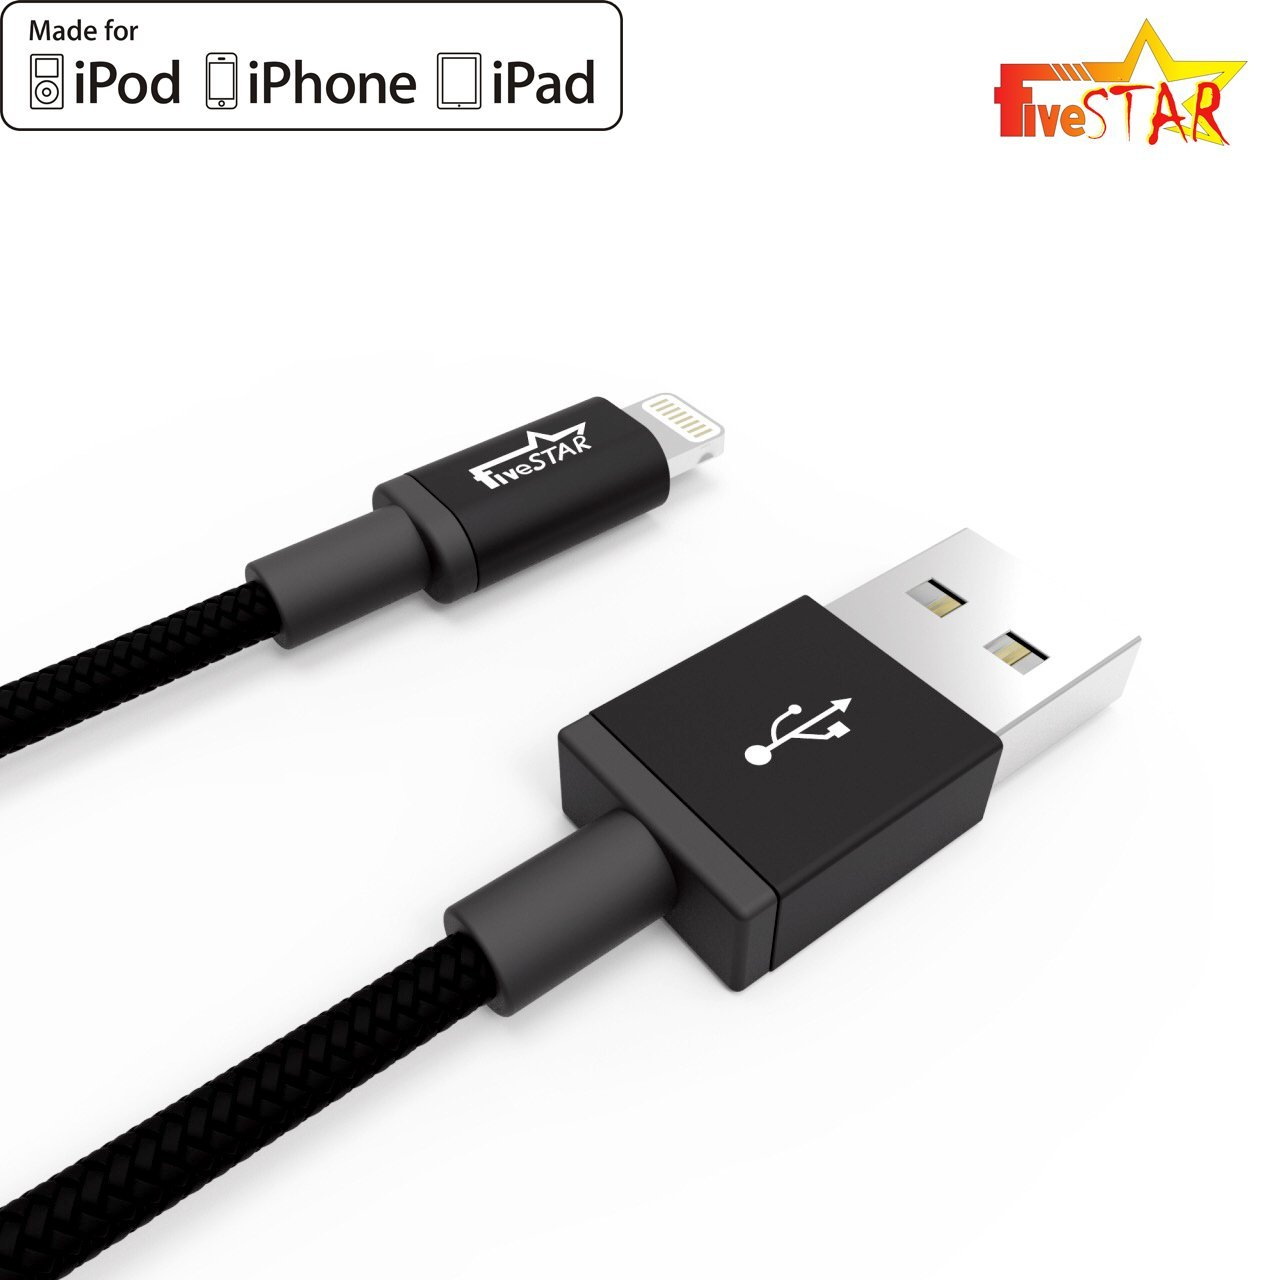 Best iPhone Charging USB Cable Cord Lightning to USB Cable Black Silver [APPLE MFI Certified] (Black)